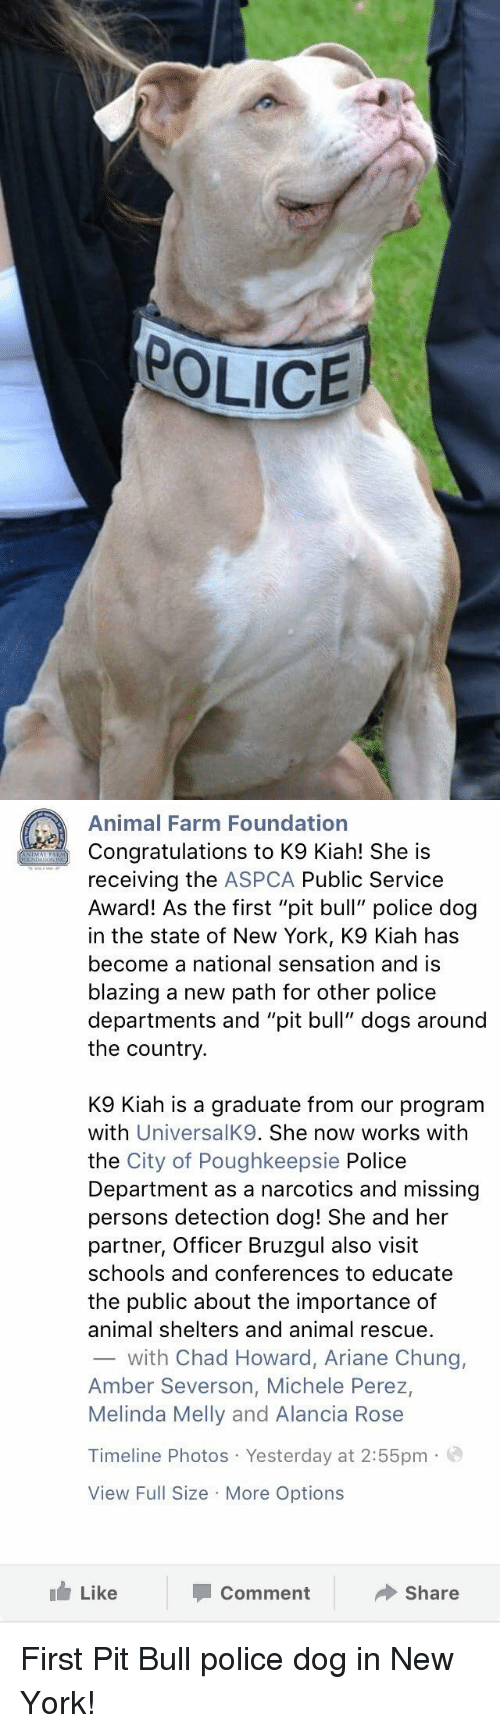 """Aspca: POLICE   Animal Farm Foundation  Congratulations to K9 Kiah! She is  receiving the  ASPCA Public Service  Award! As the first """"pit bull"""" police dog  in the state of New York, K9 Kiah has  become a national sensation and is  blazing a new path for other police  departments and """"pit bull"""" dogs around  the country  K9 Kiah is a graduate from our program  with  UniversalK9. She now works with  the City of Poughkeepsie Police  Department as a narcotics and missing  persons detection dog! She and her  partner, Officer Bruzgul also visit  schools and conferences to educate  the public about the importance of  animal shelters and animal rescue.  with Chad Howard, Ariane Chung,  Amber Severson, Michele Perez,  Melinda Melly and Alancia Rose  Timeline Photos Yesterday at 2:55pm  a  View Full Size More Options  Like  Share  Comment First Pit Bull police dog in New York!"""